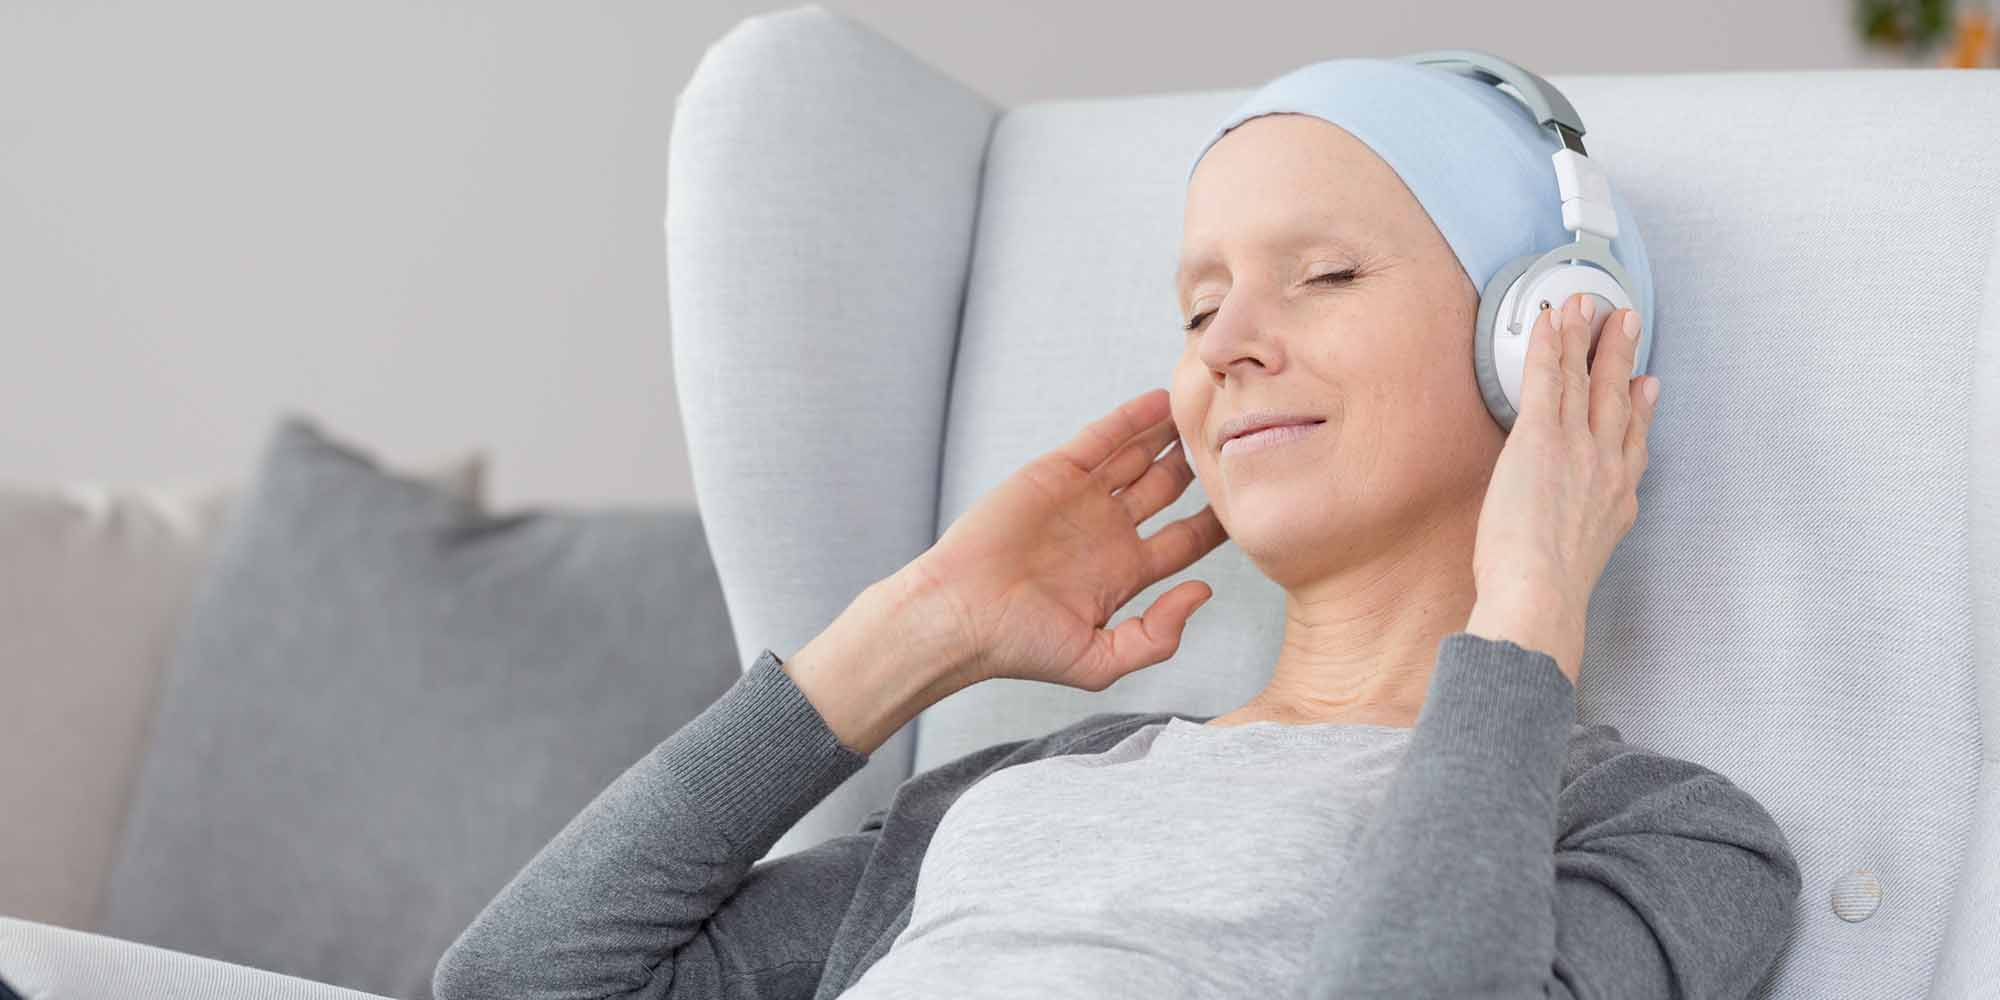 Cancer Patient Woman smiling resting listening to music headphones